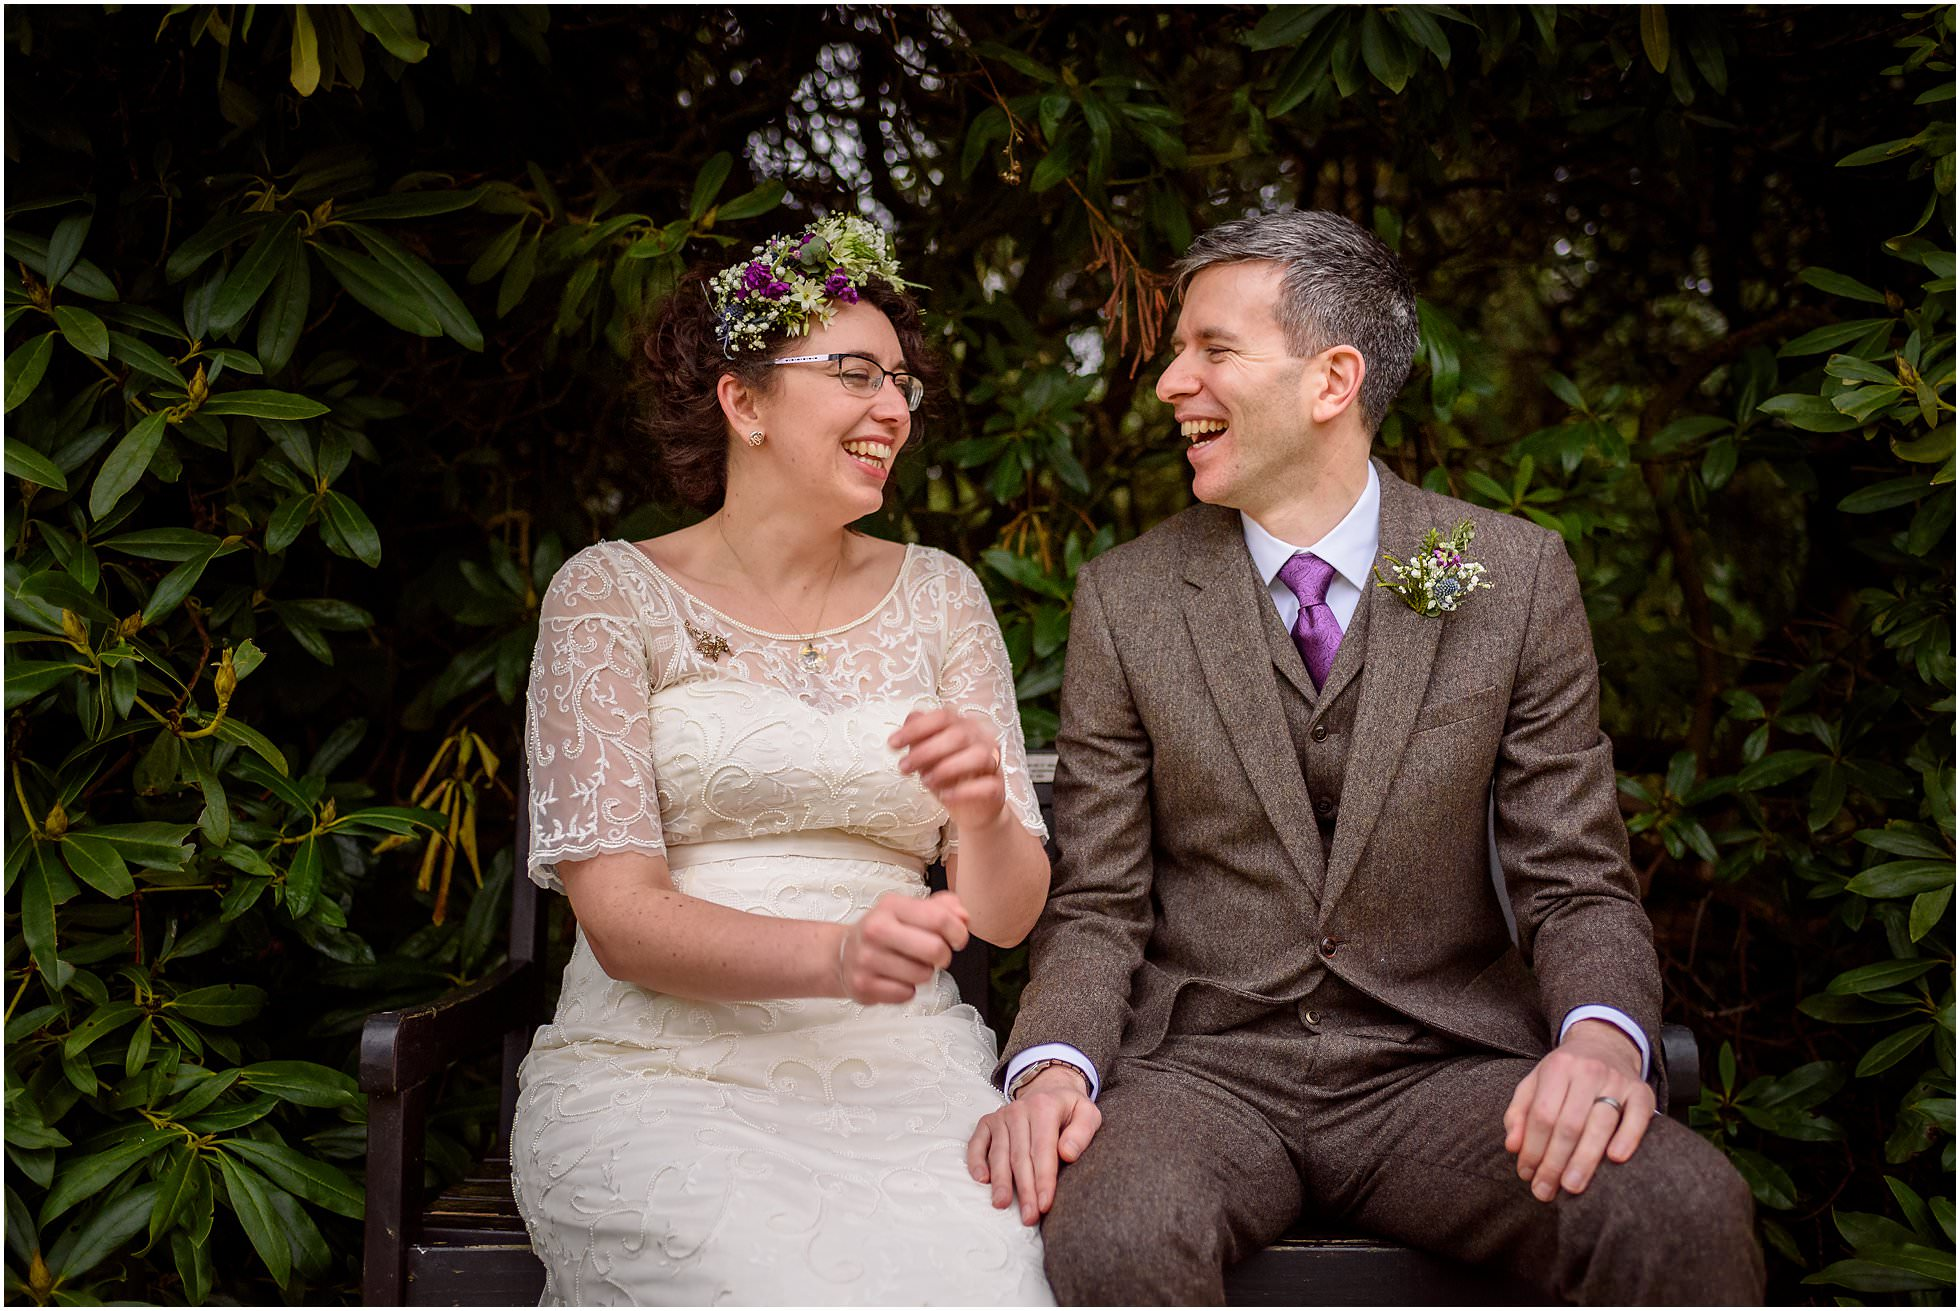 Wedding at Highbury Hall in the beautiful grounds for some candid relaxed protraits